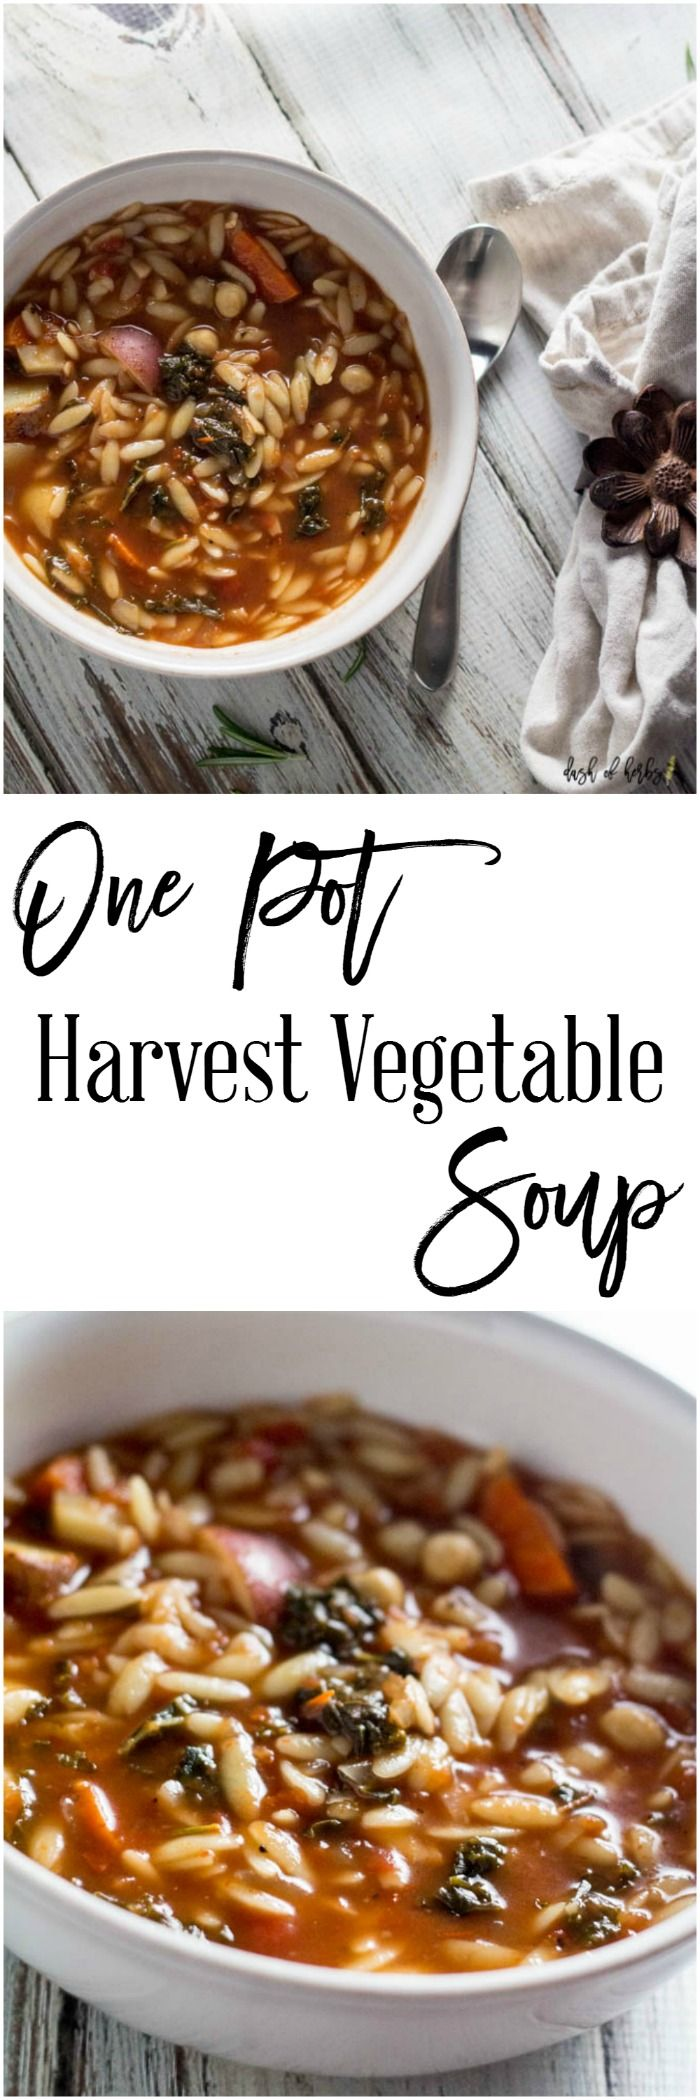 One Pot Harvest Vegetable Soup - An easy recipe that is hearty and will warm your heart and soul.  The kale, potatoes, carrots and orzo come together for wonderful flavor.  It's only 4 SmartPoints per serving (1 cup) on Weight Watchers.  Yum!  http://dashofherbs.com/one-pot-harvest-vegetable-soup/